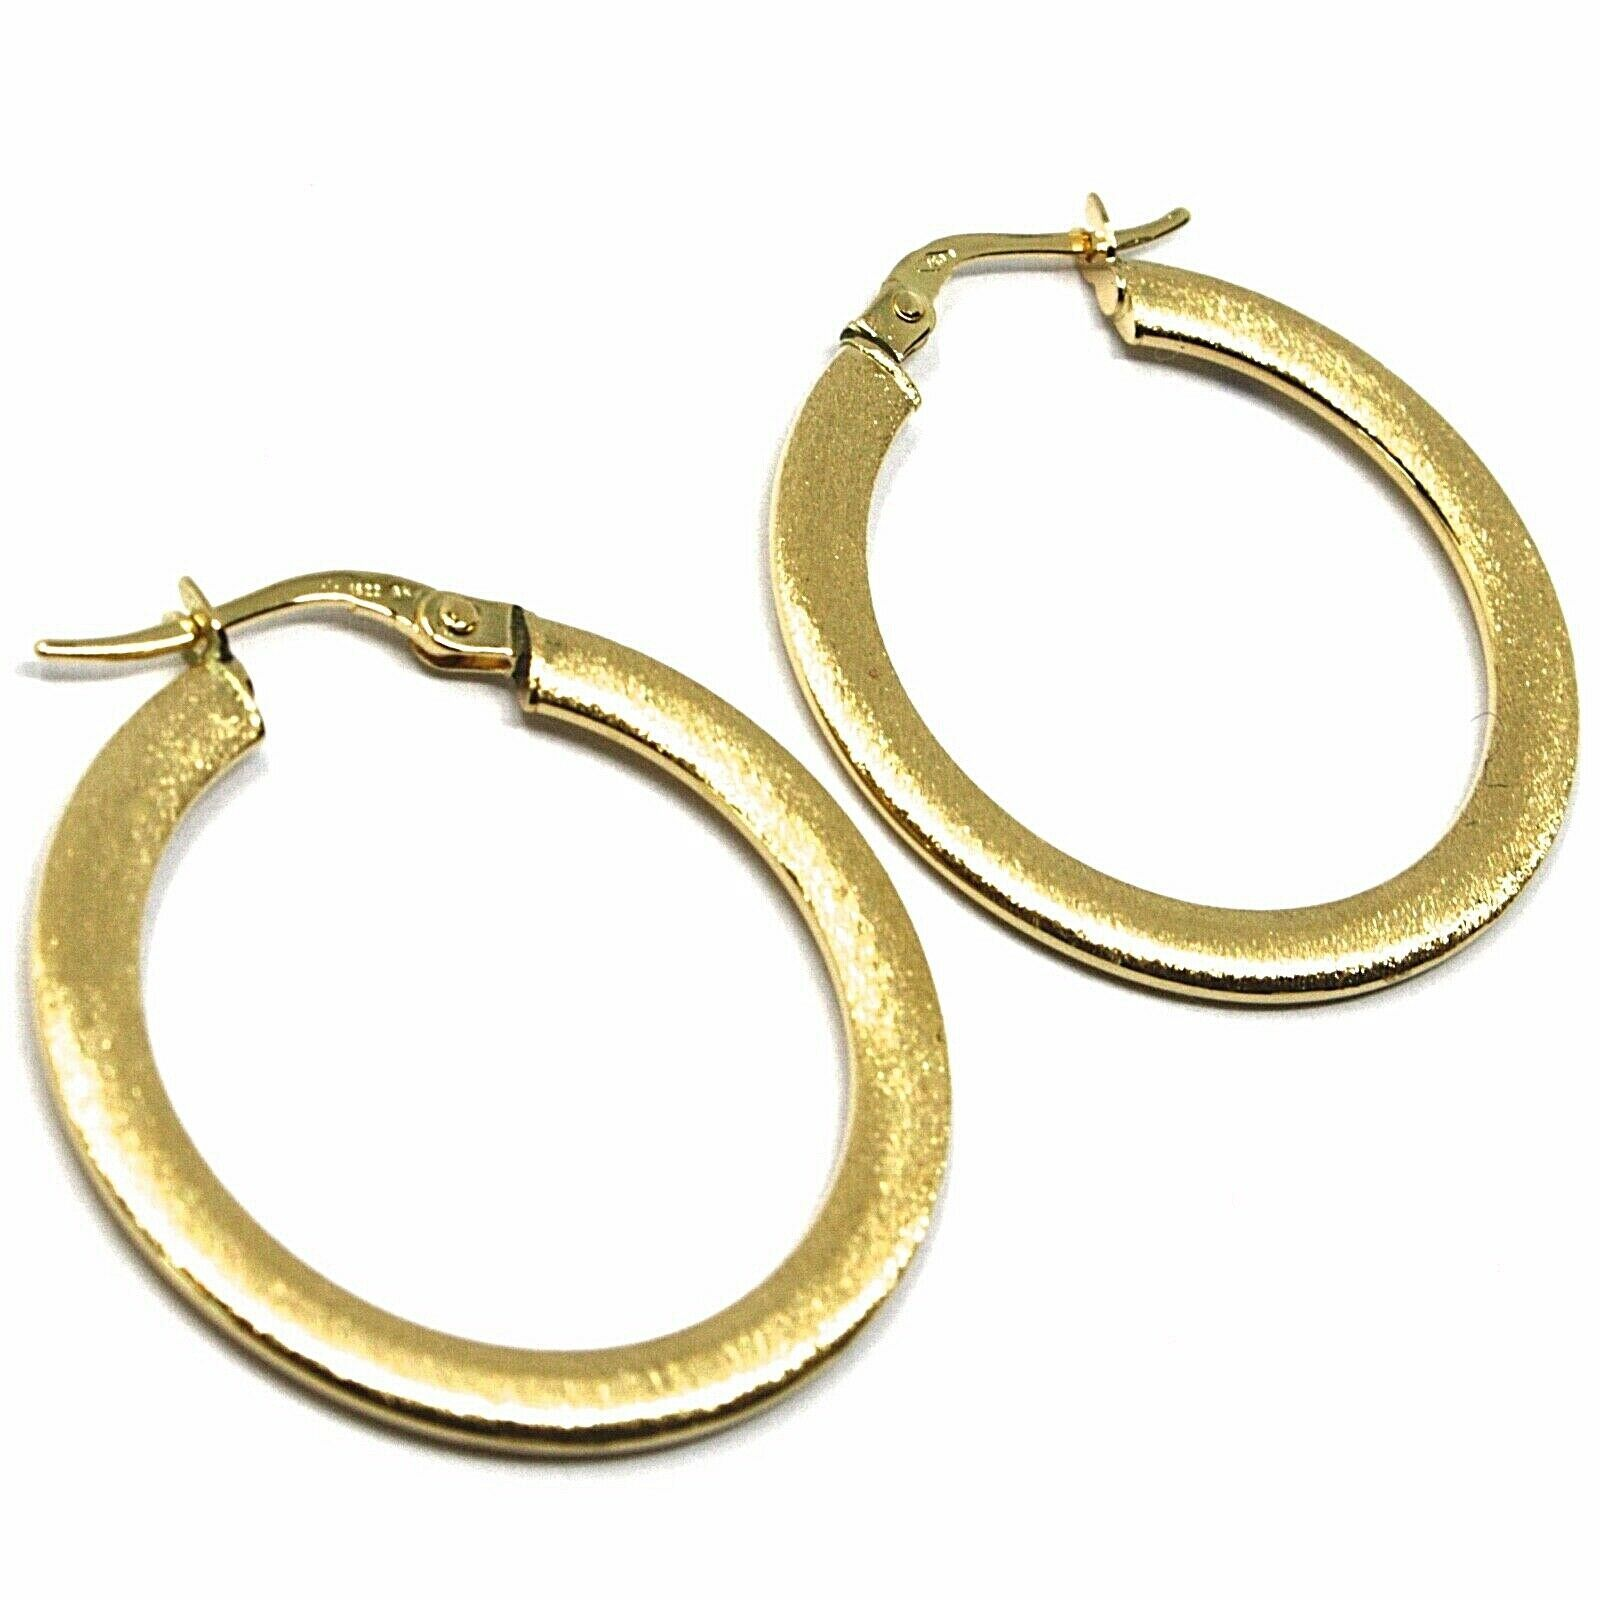 18K YELLOW GOLD CIRCLE HOOPS 3x1mm, EARRINGS 26mm, DOUBLE FACE SMOOTH & SATIN